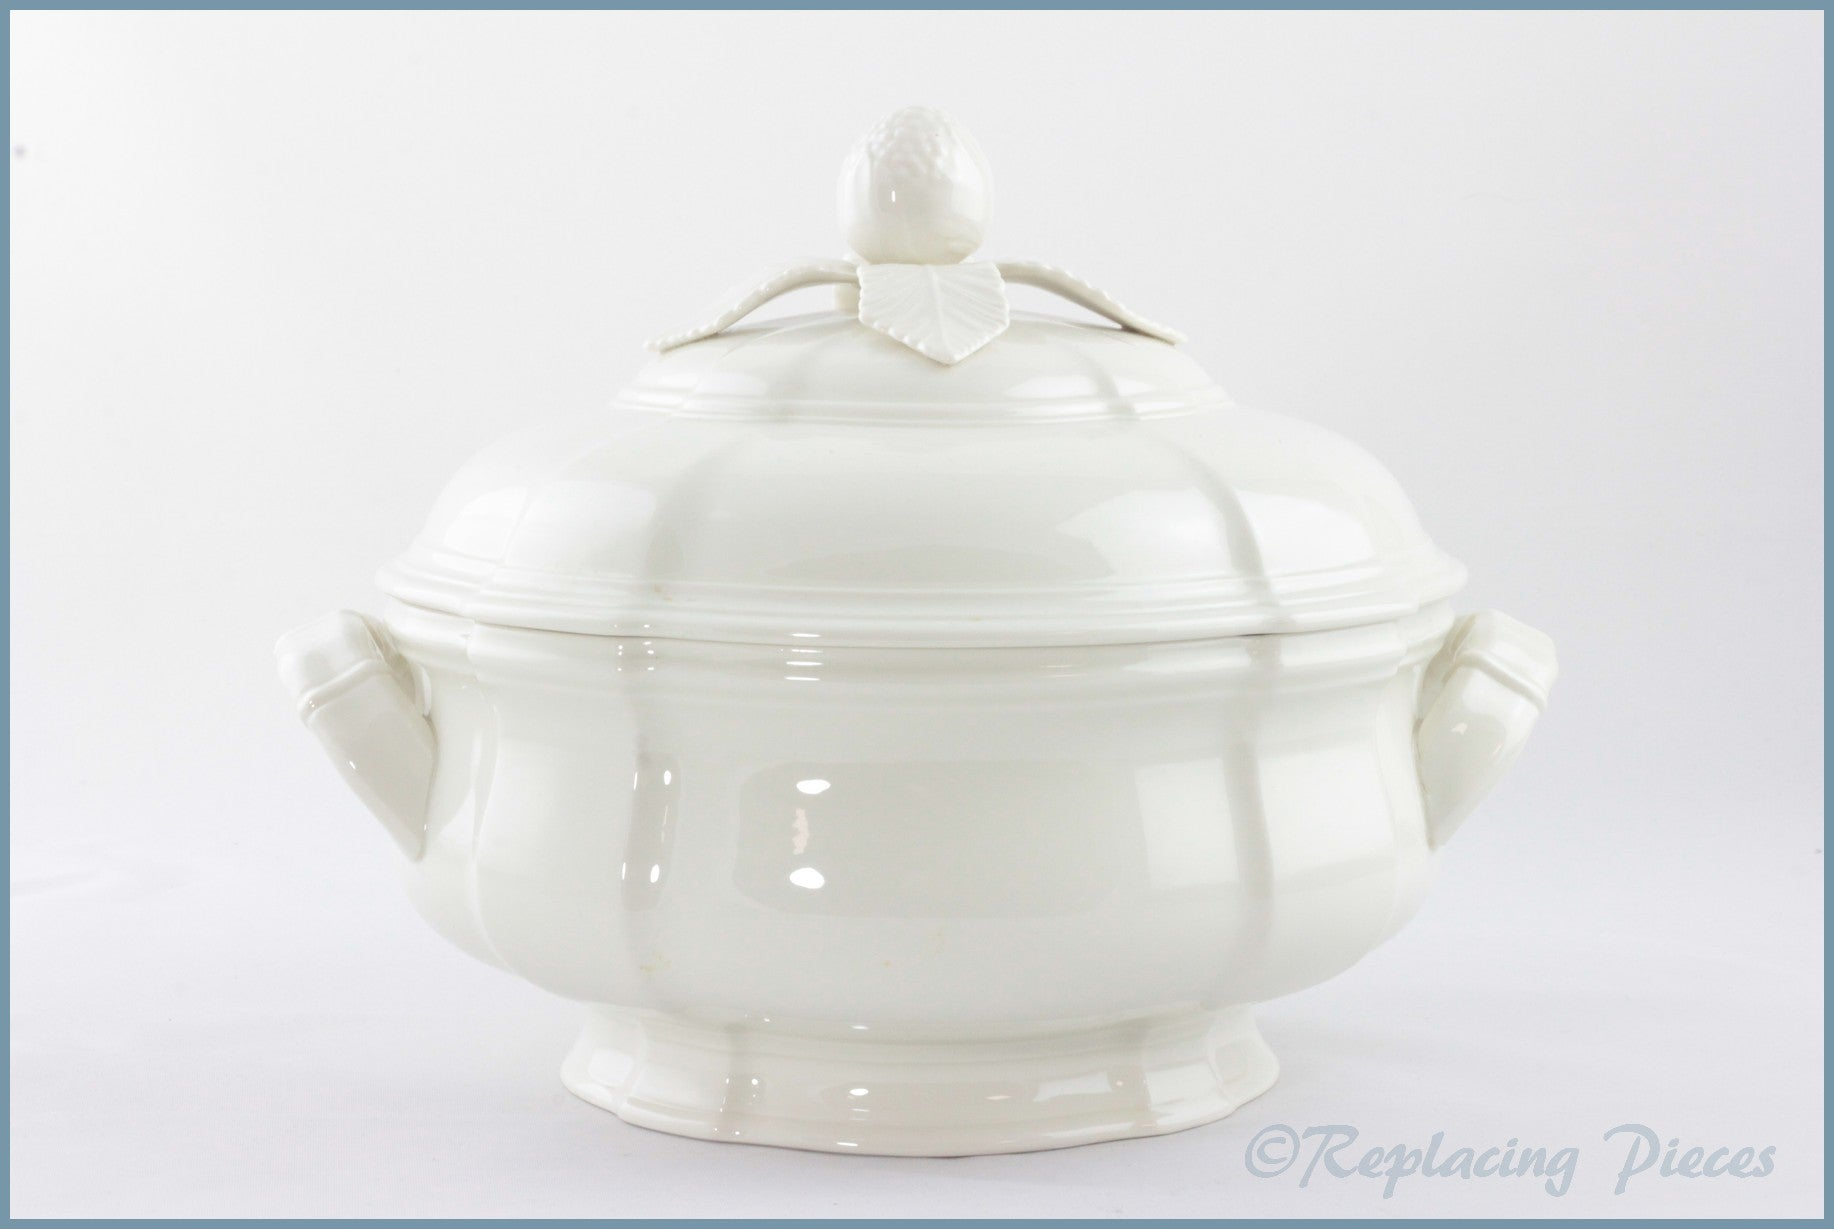 Villeroy & Boch - Manoir - Lidded Vegetable Dish